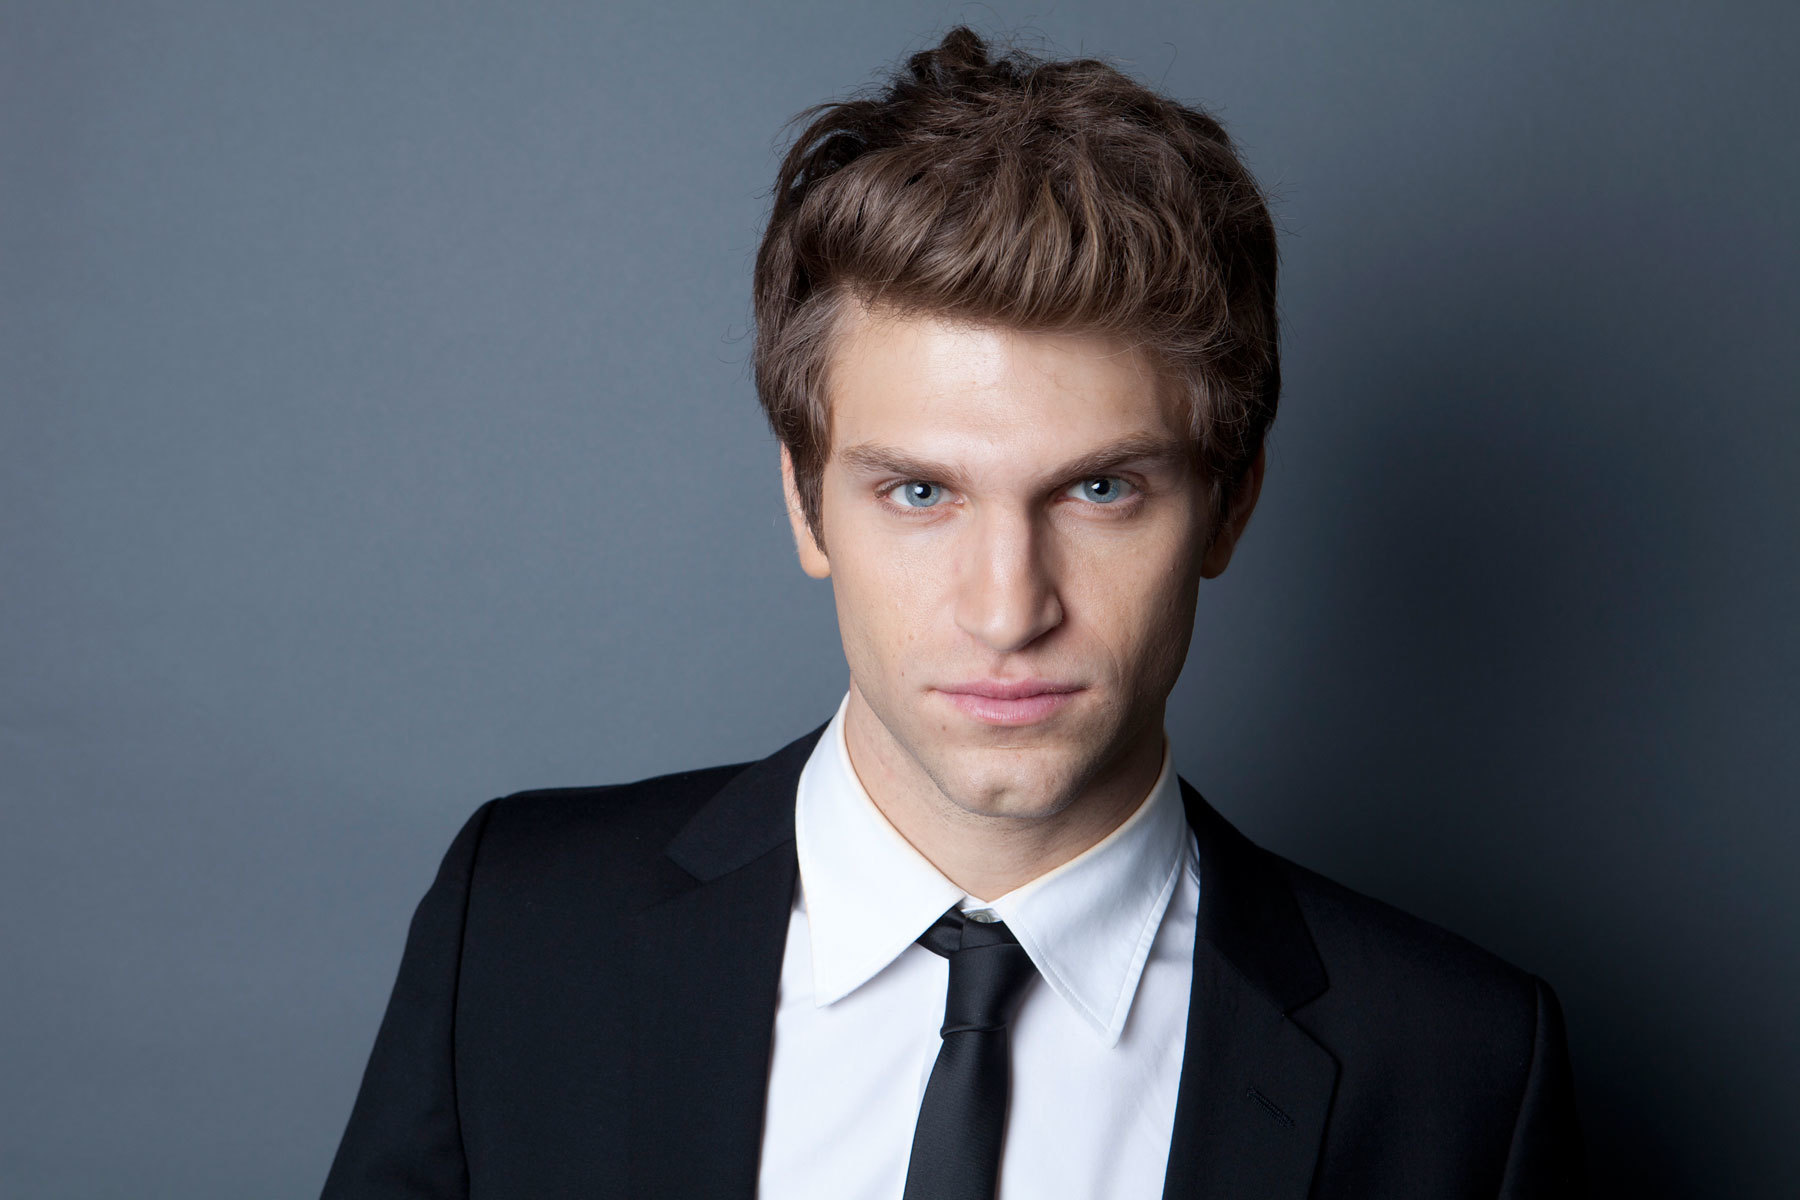 Charitybuzz lunch with keegan allen at the ivy in beverly hills original m4hsunfo